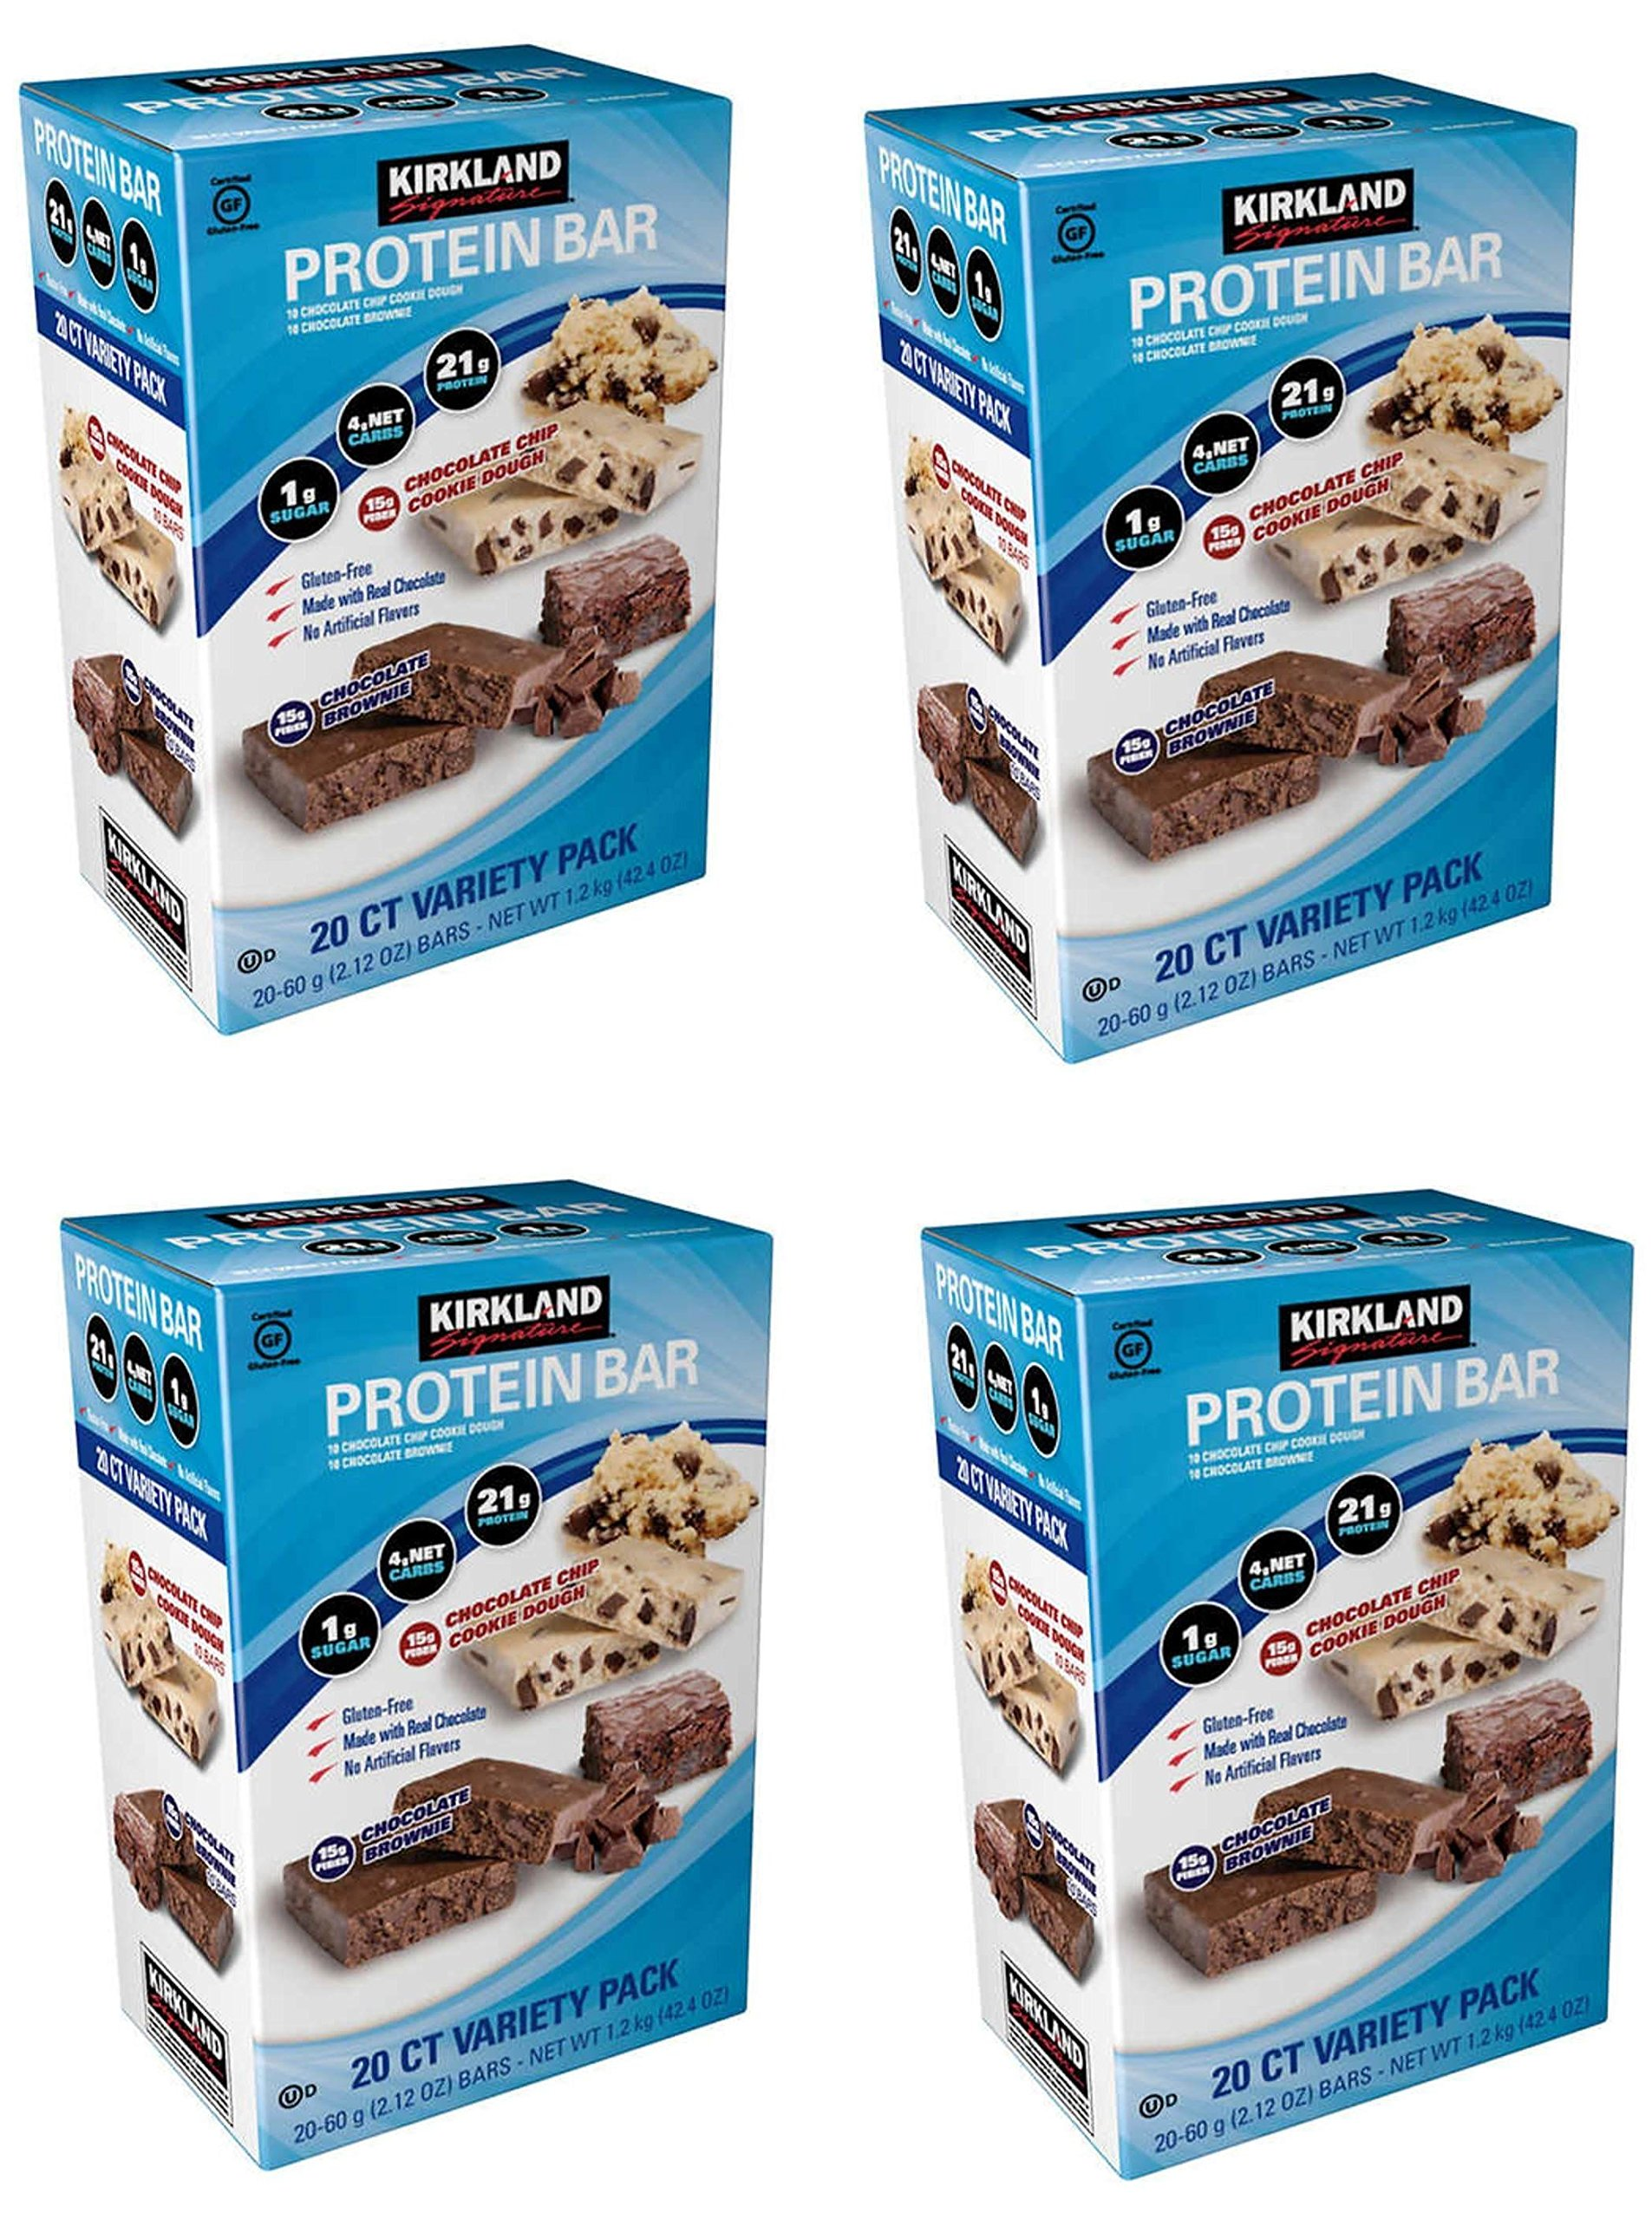 Kirkland Signature Variety Protein Bars 20 count, 21G Of Protein, 4G Of Carbs and 1G Of Sugar, Chocolate Brownie and Chocolate Chip Cookie Dough, 4 Boxes